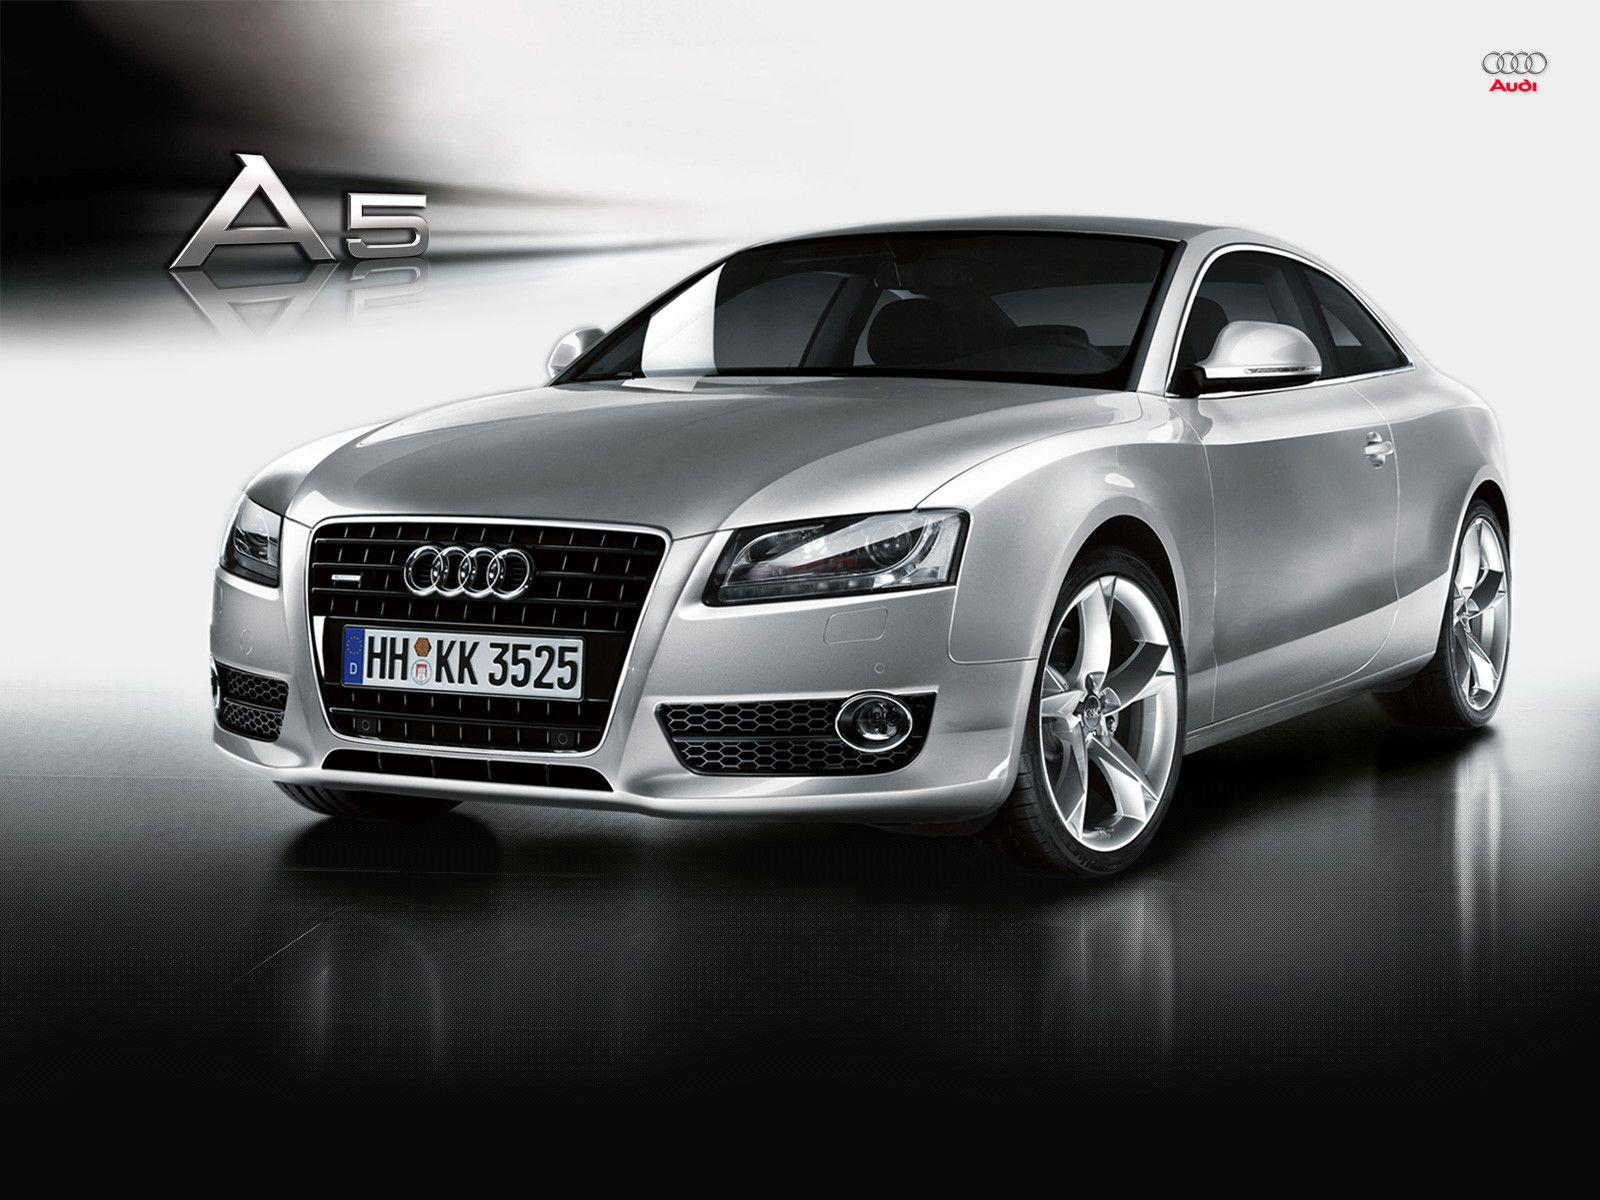 Audi A5 Wallpapers HD